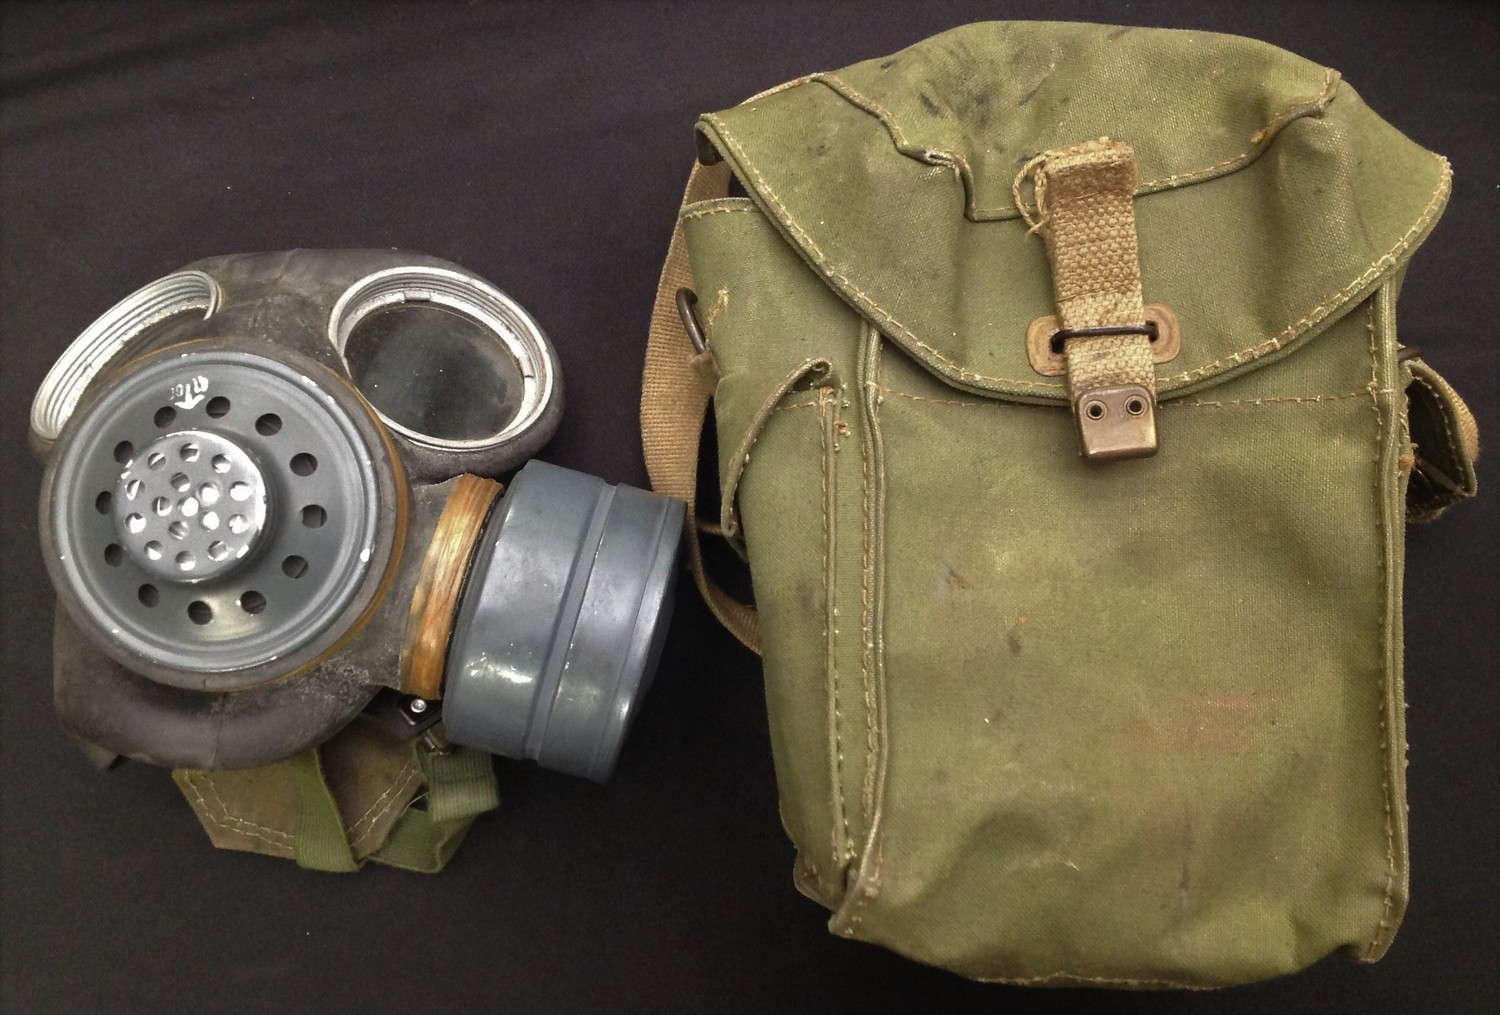 WW2 pattern British Lightweight Respirator, mask dated 1956, straps dated 1964 and complete with a